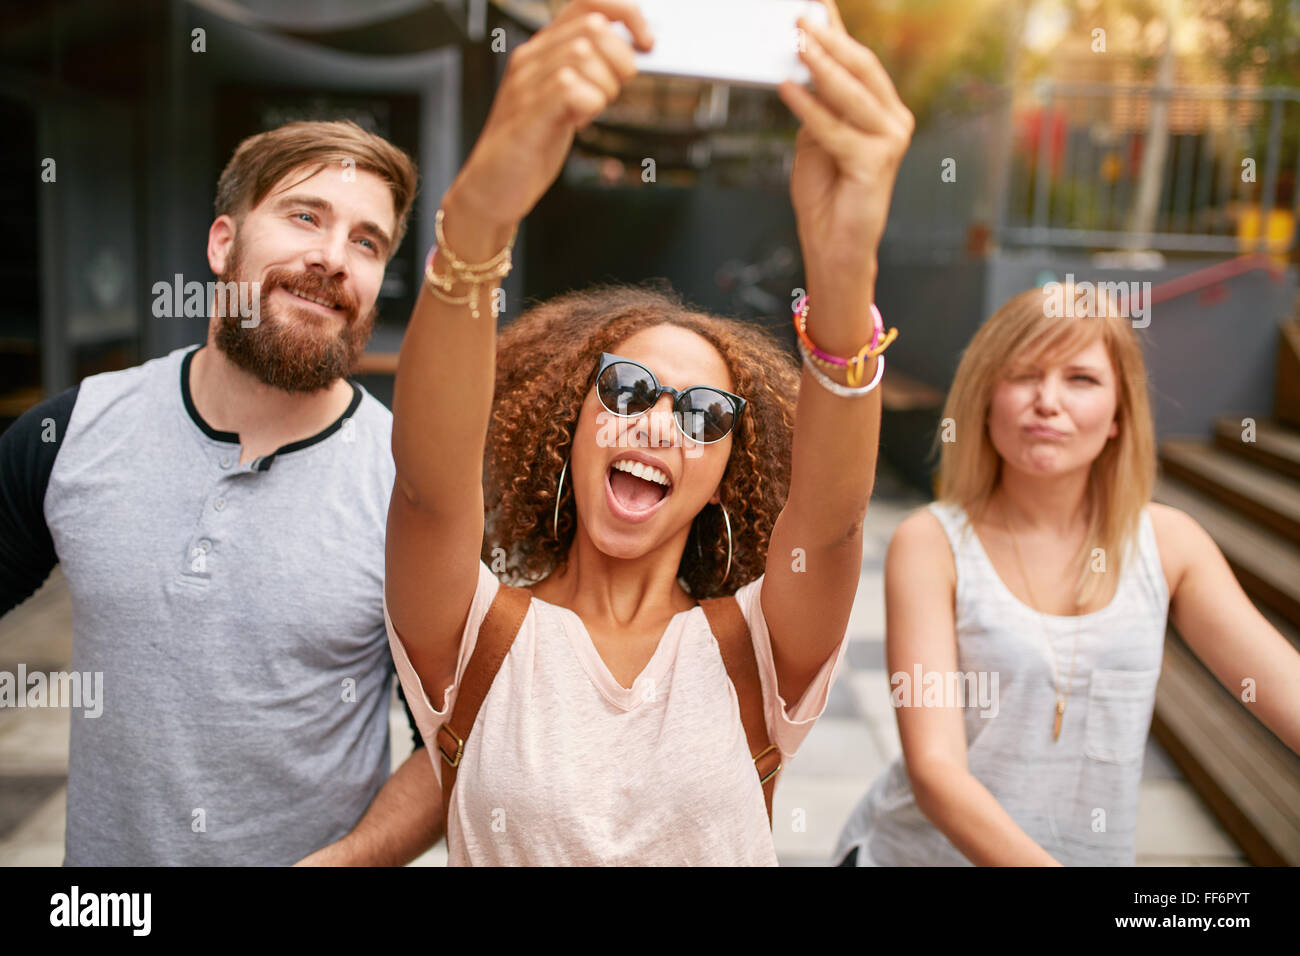 Excited young woman with friends taking a selfie on her smart phone. African woman taking selfie with mobile phone. - Stock Image